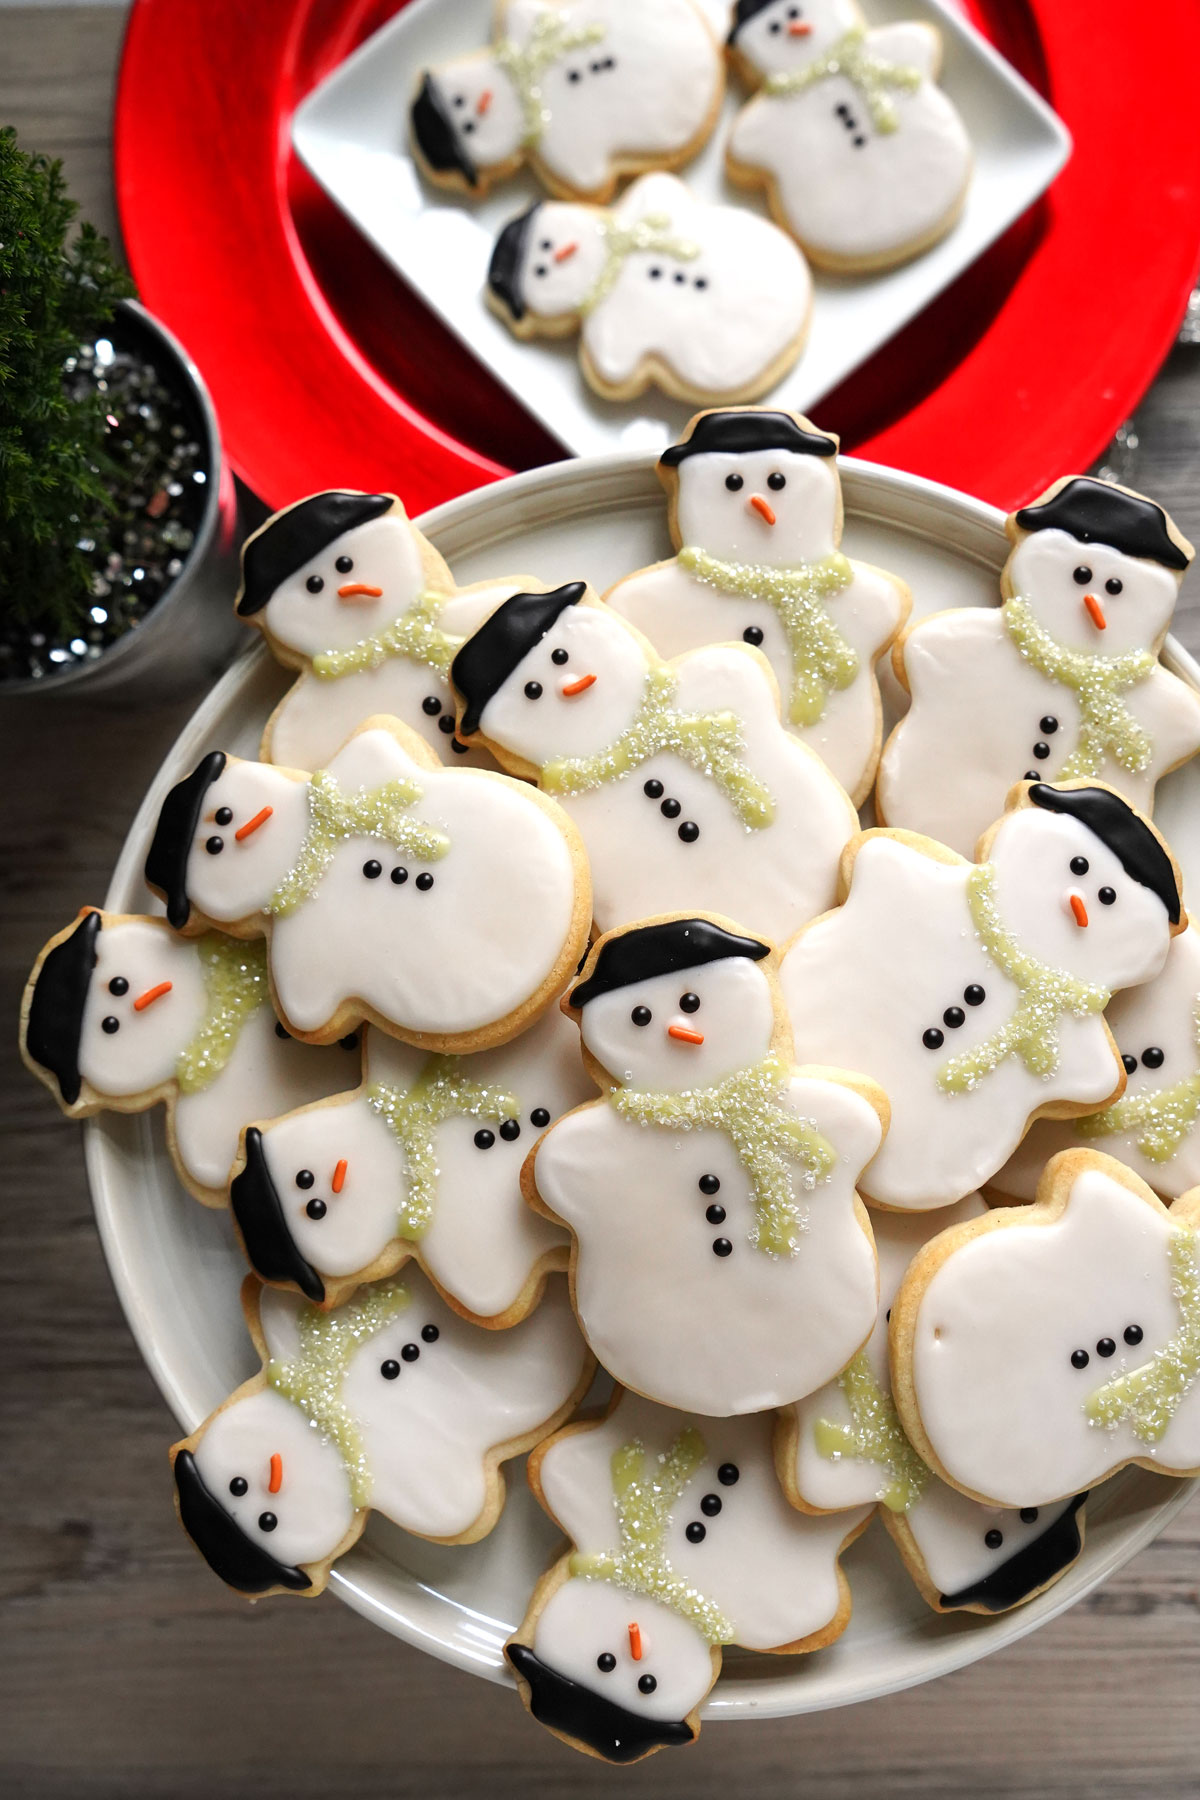 Tray of decorated snowman sugar cookies.